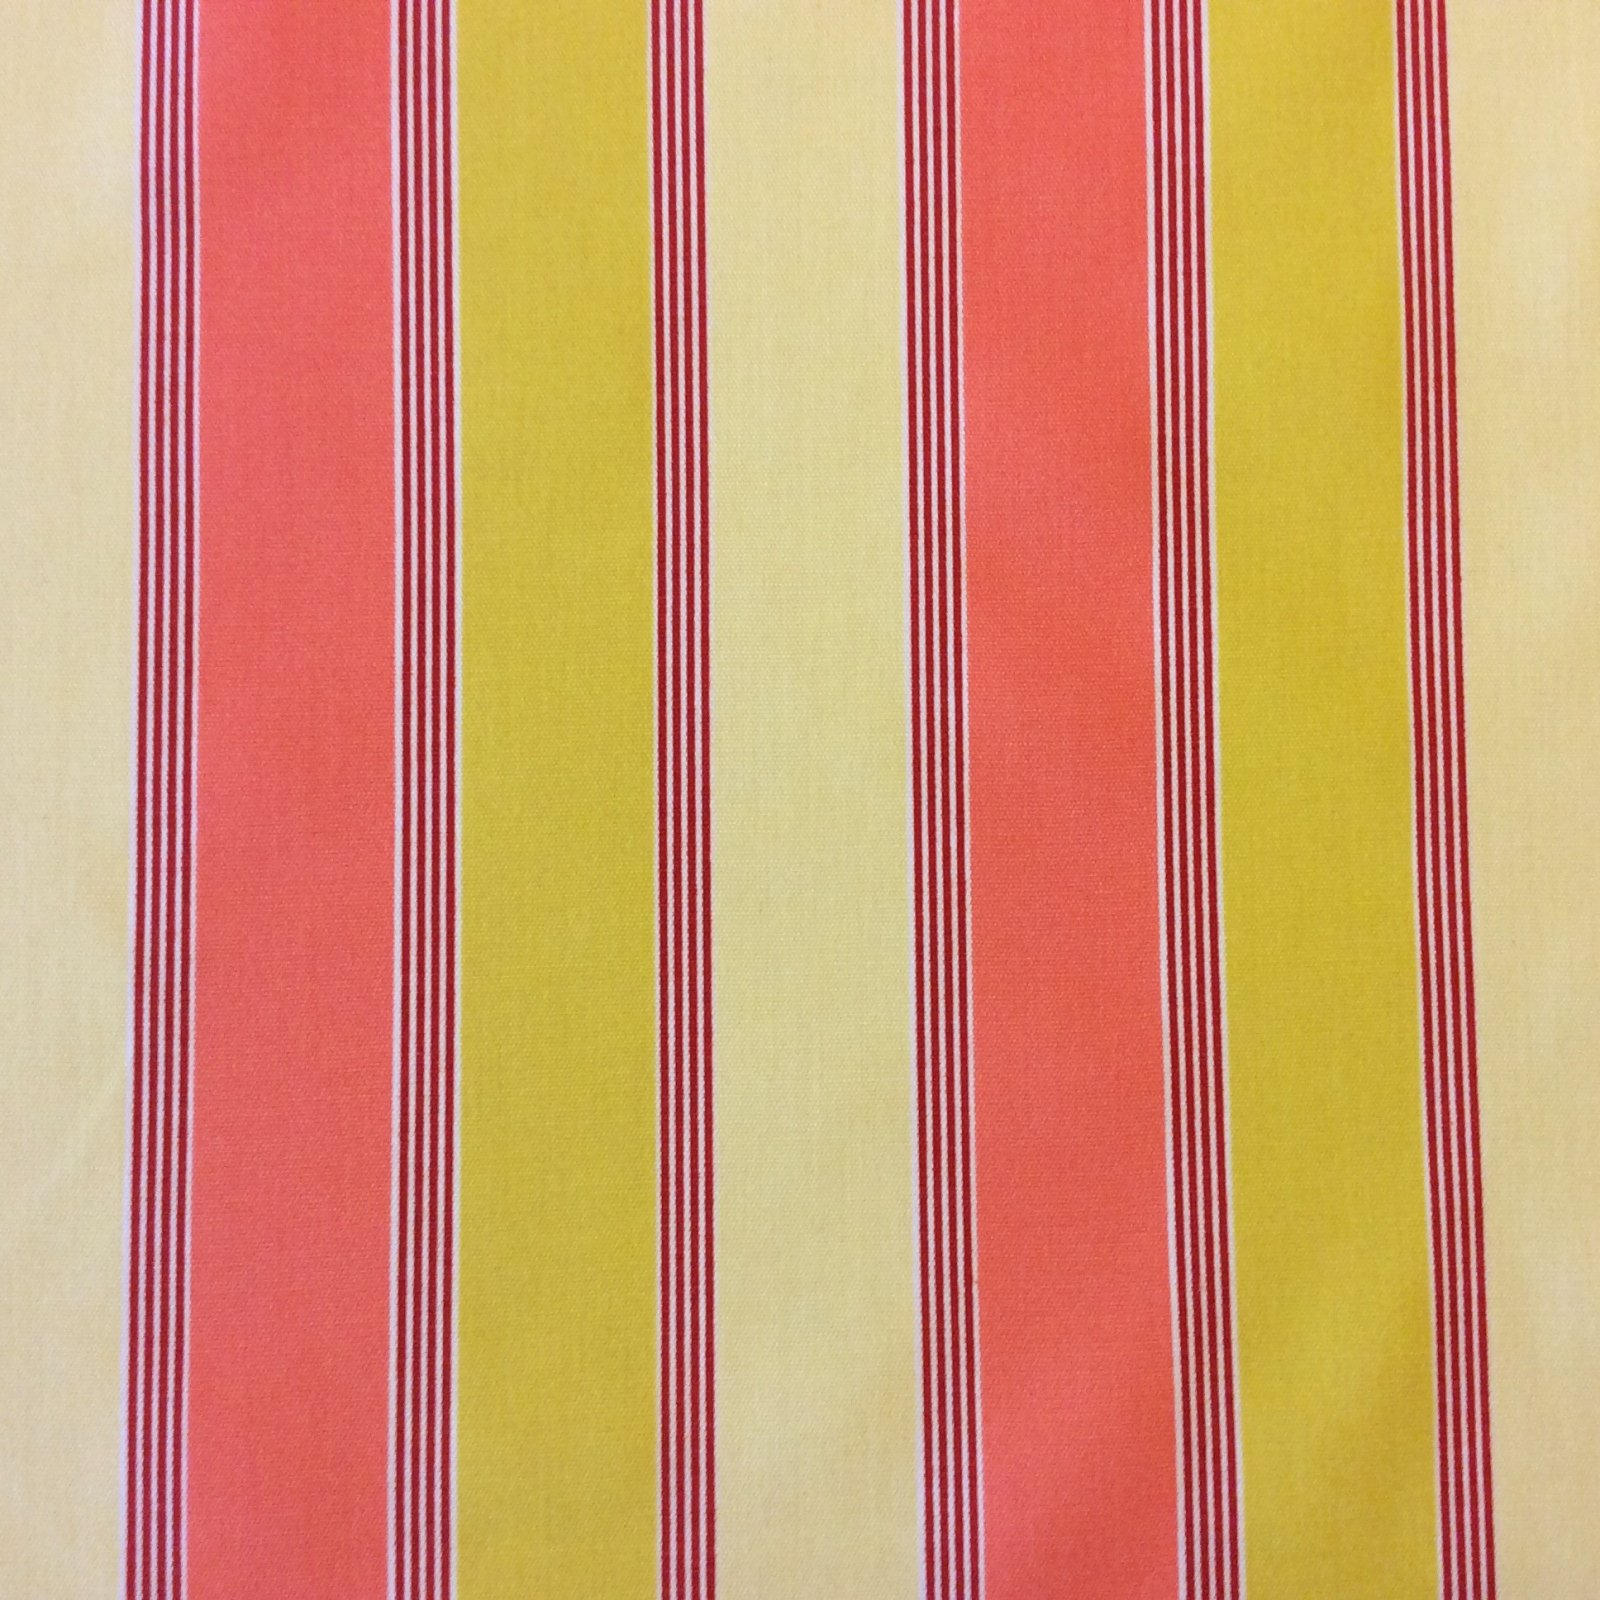 6 YARD BOLT! Classic Stripe Warm Striped Geo Patio Awning Indoor Outdoor Home Dec Fabric PCS119